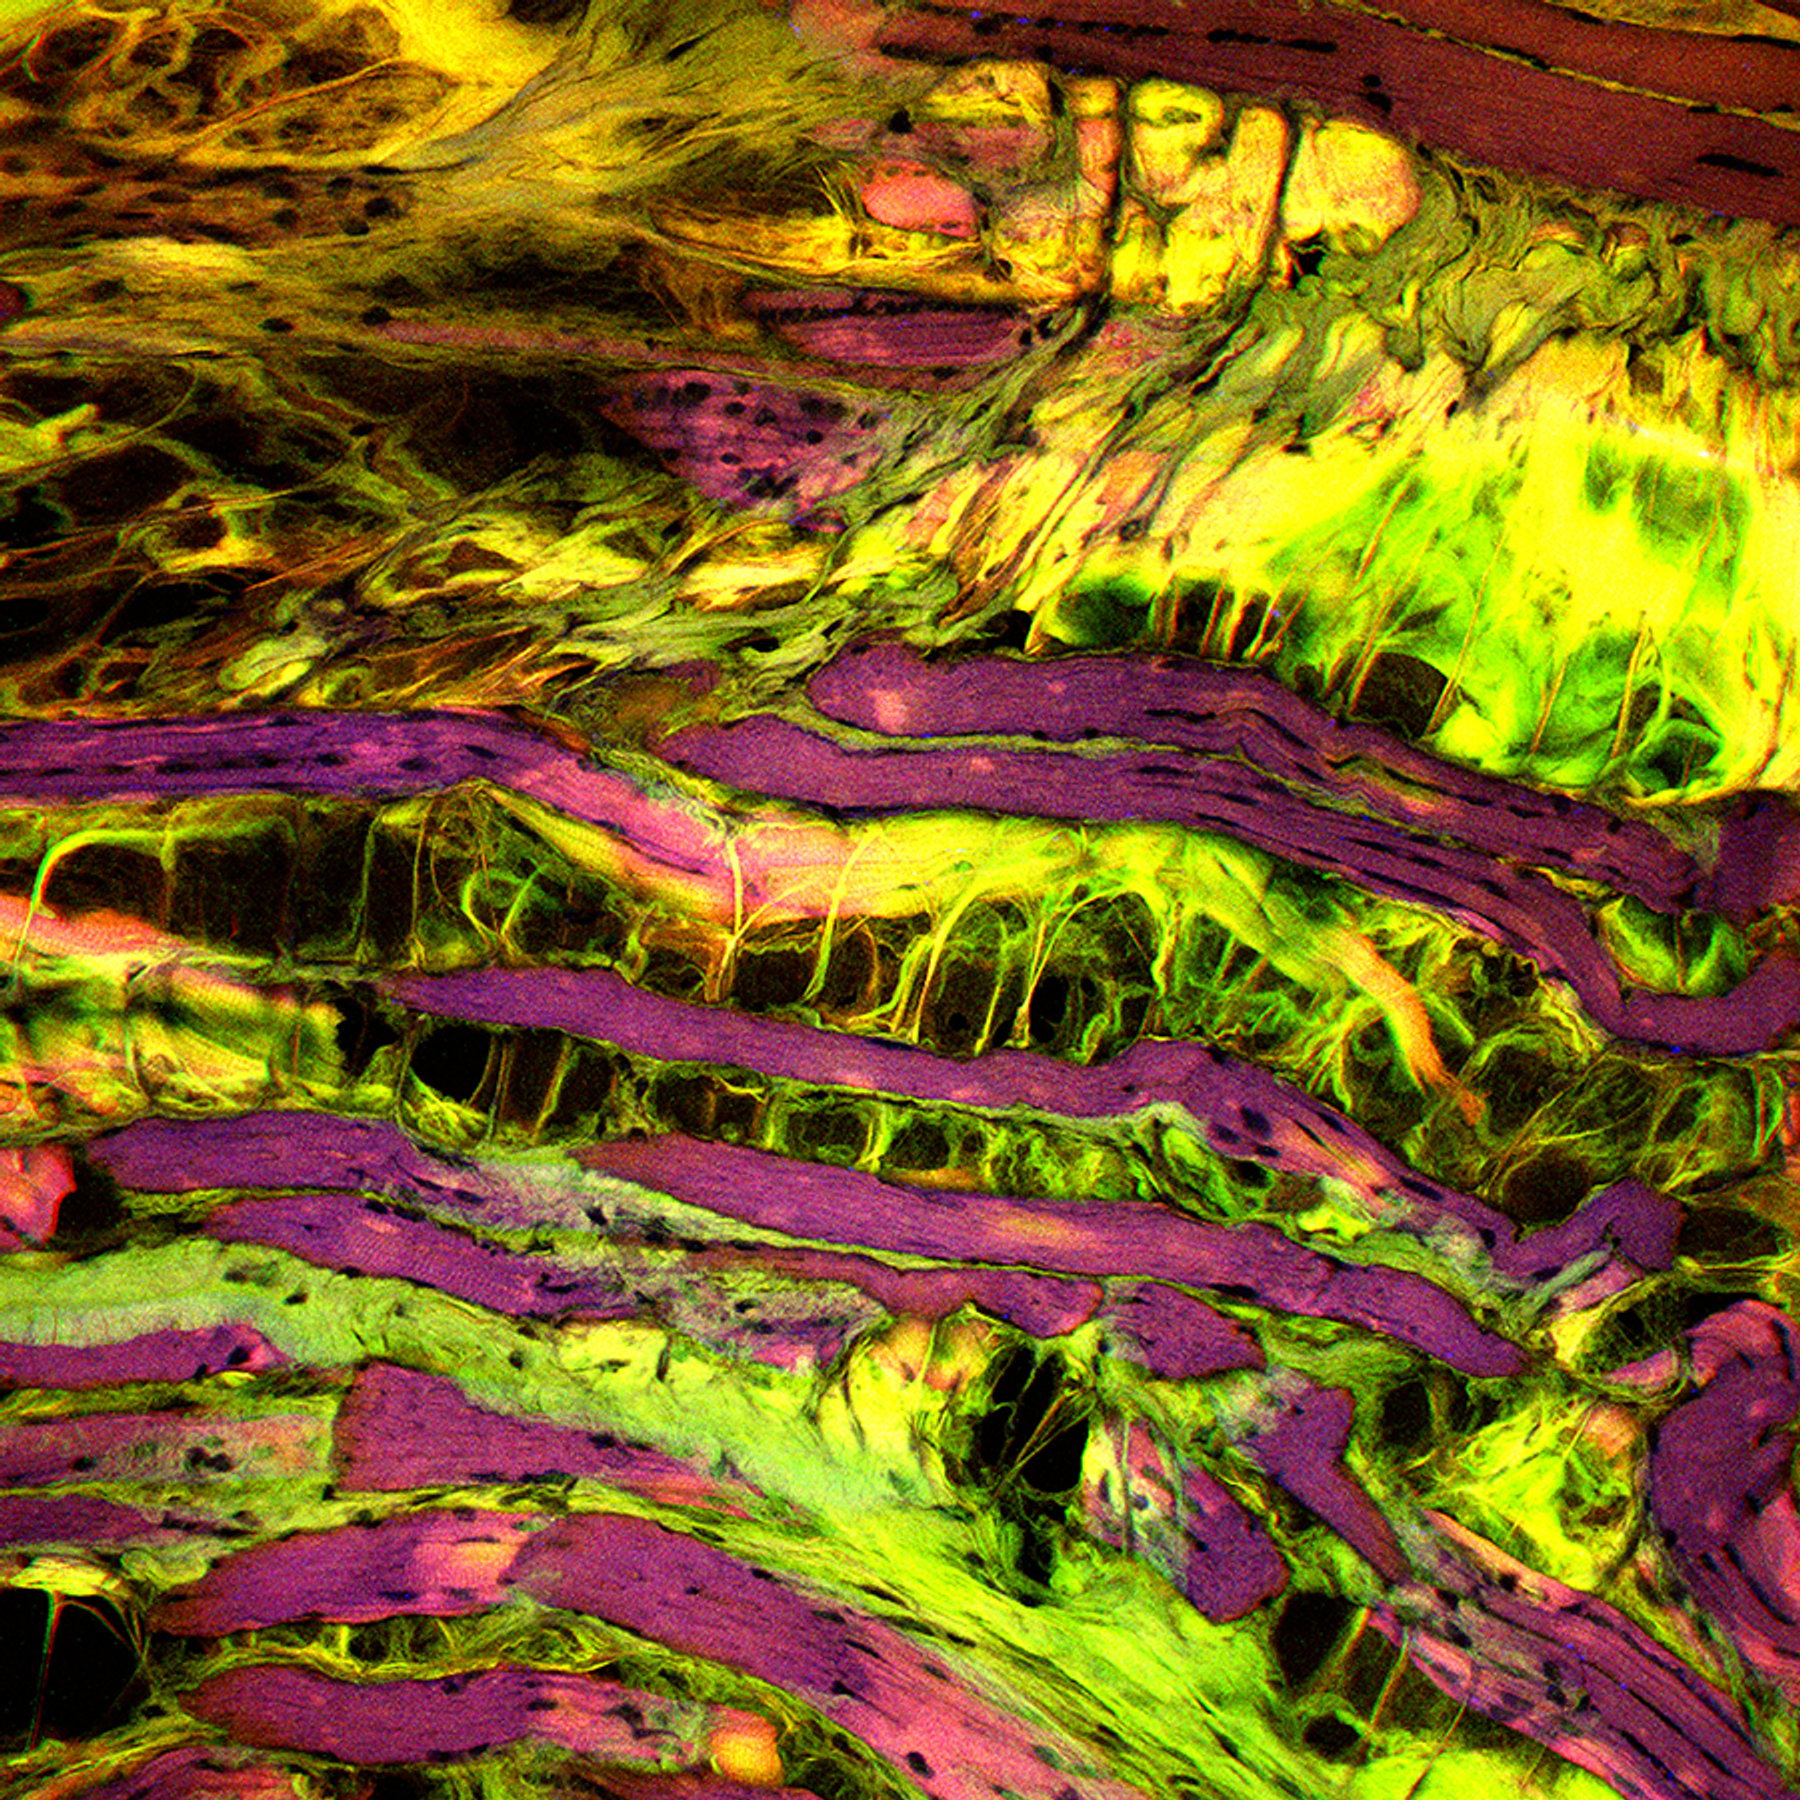 Gene Editing Could One Day Treat Muscle Disorders